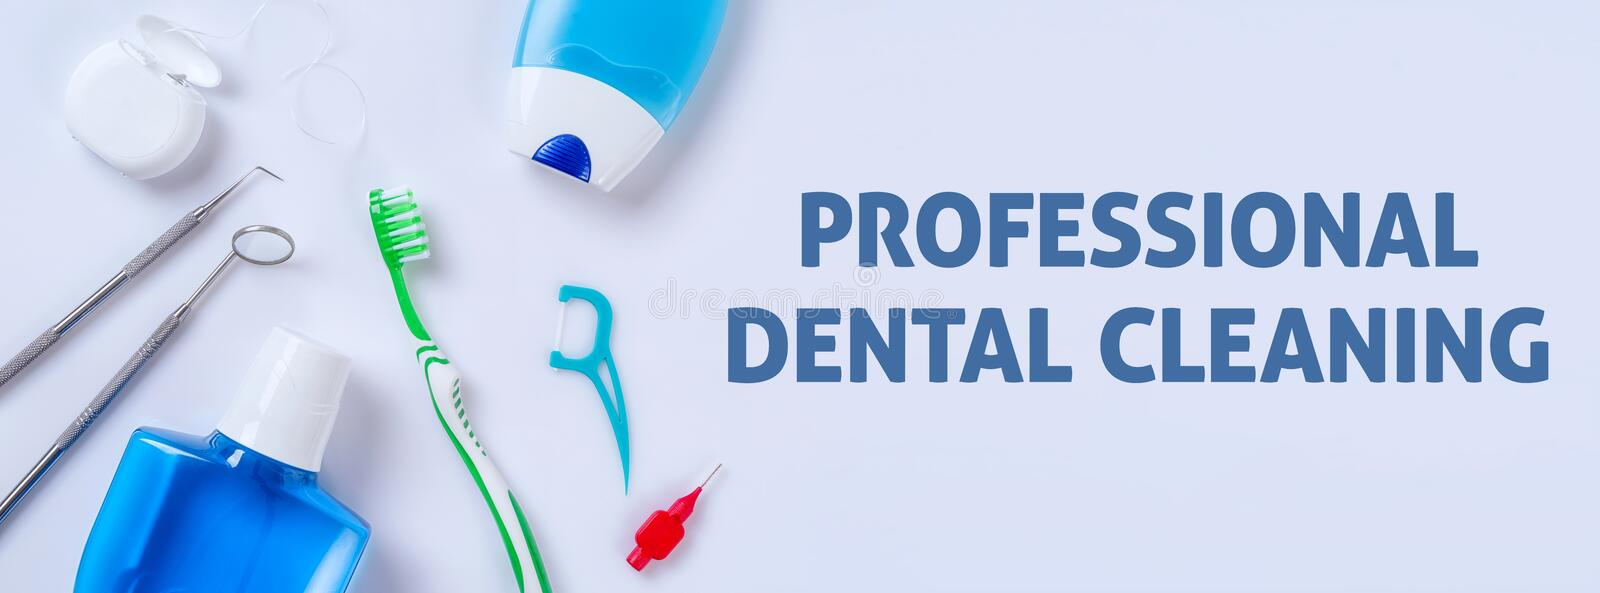 Professional dental cleaning. Oral care products on a light background - Professional dental cleaning stock photos